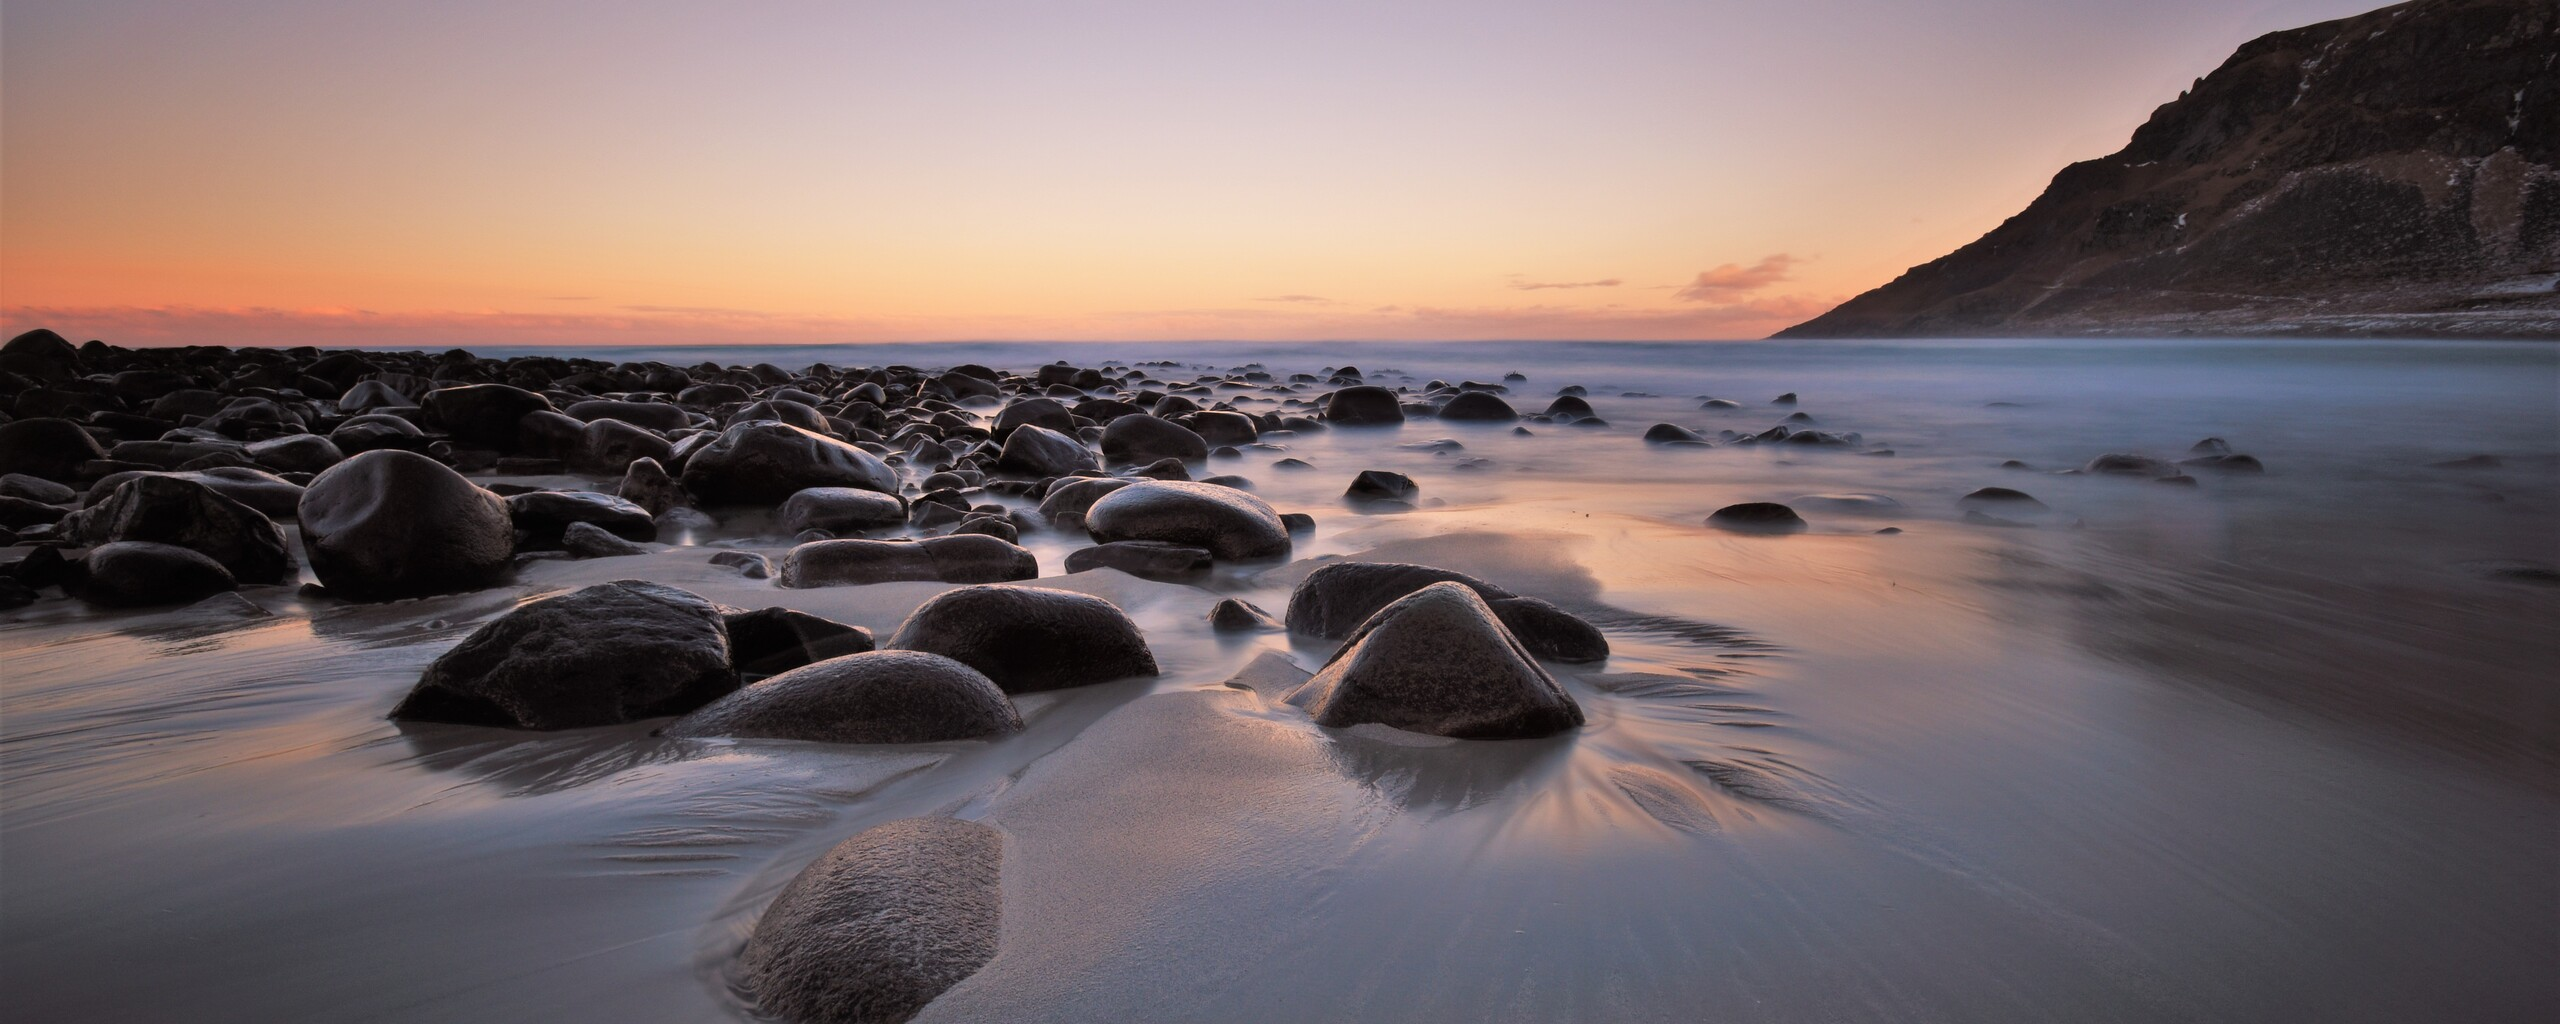 rocks-mountains-beach-4k-t6.jpg